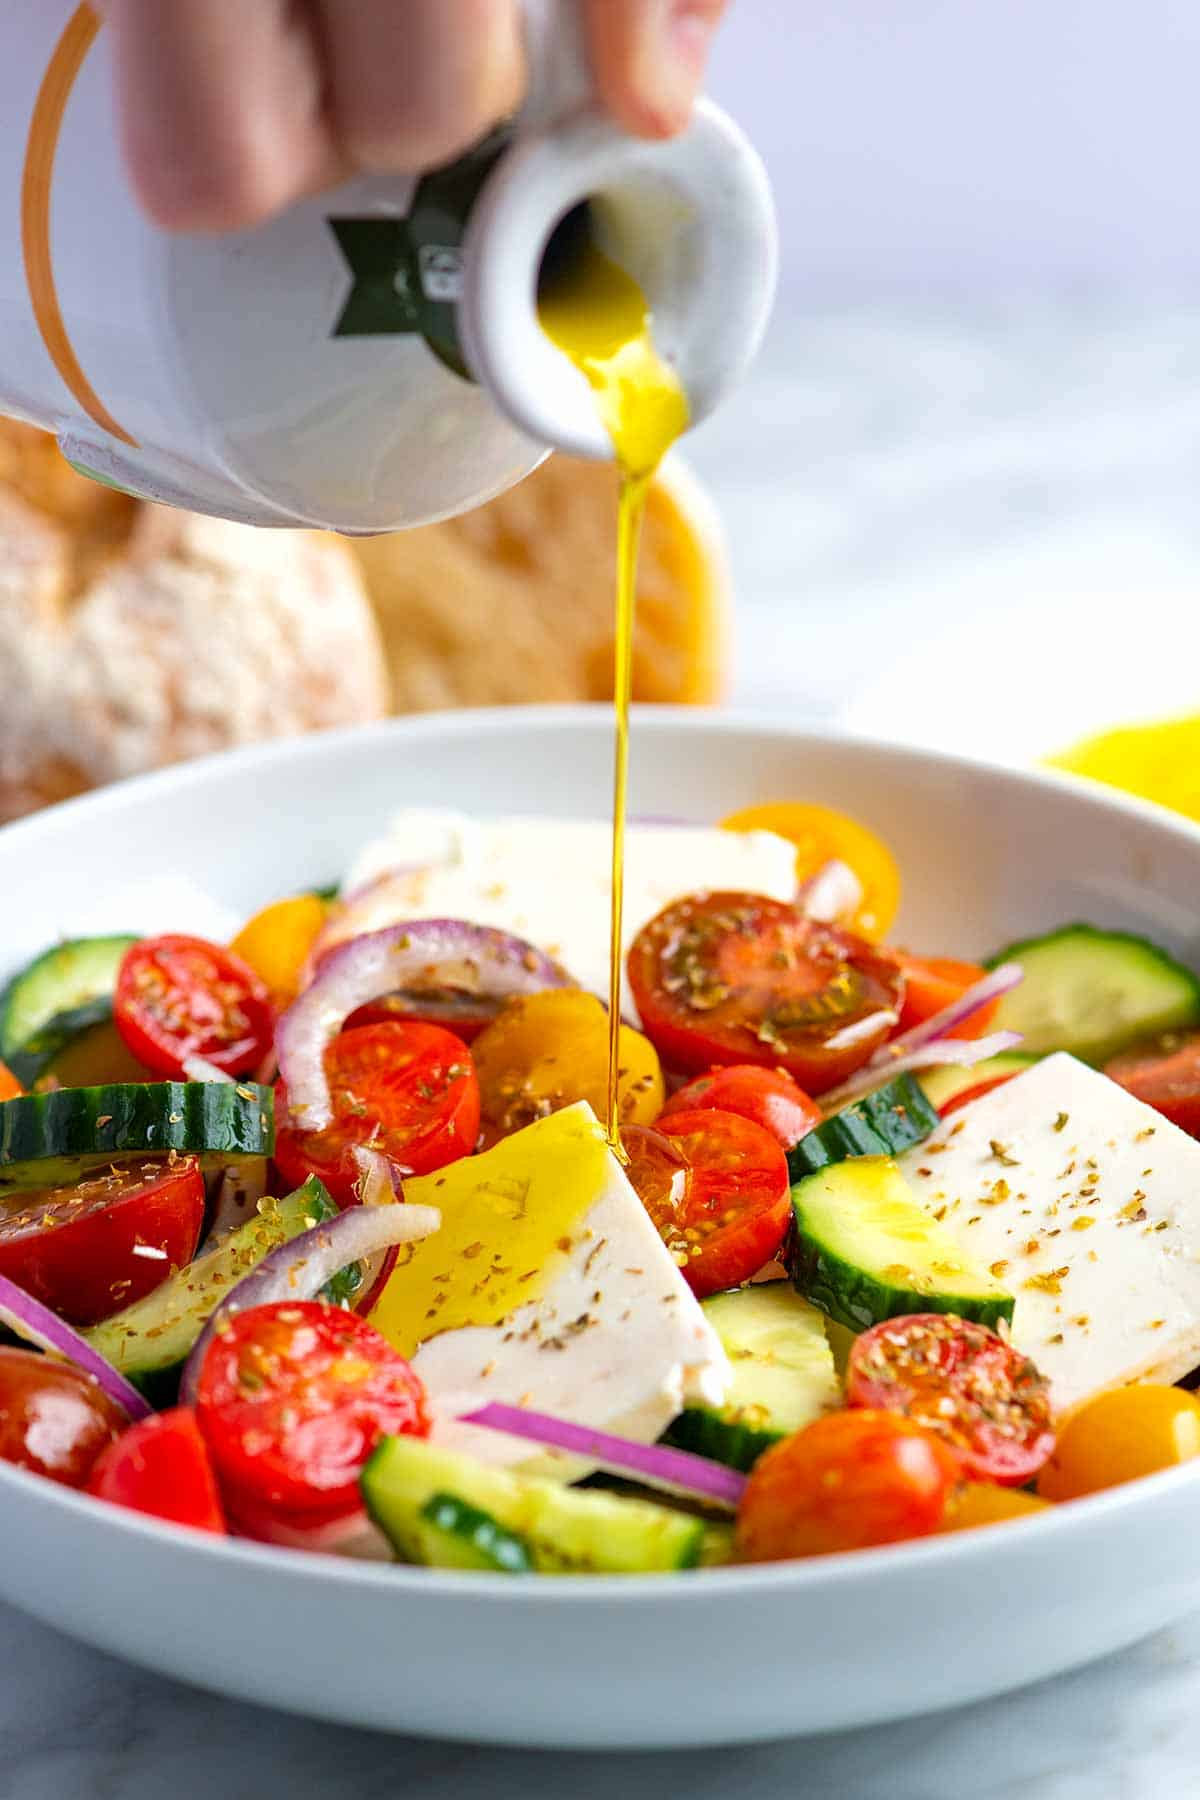 The olive oil is poured onto a Greek salad.